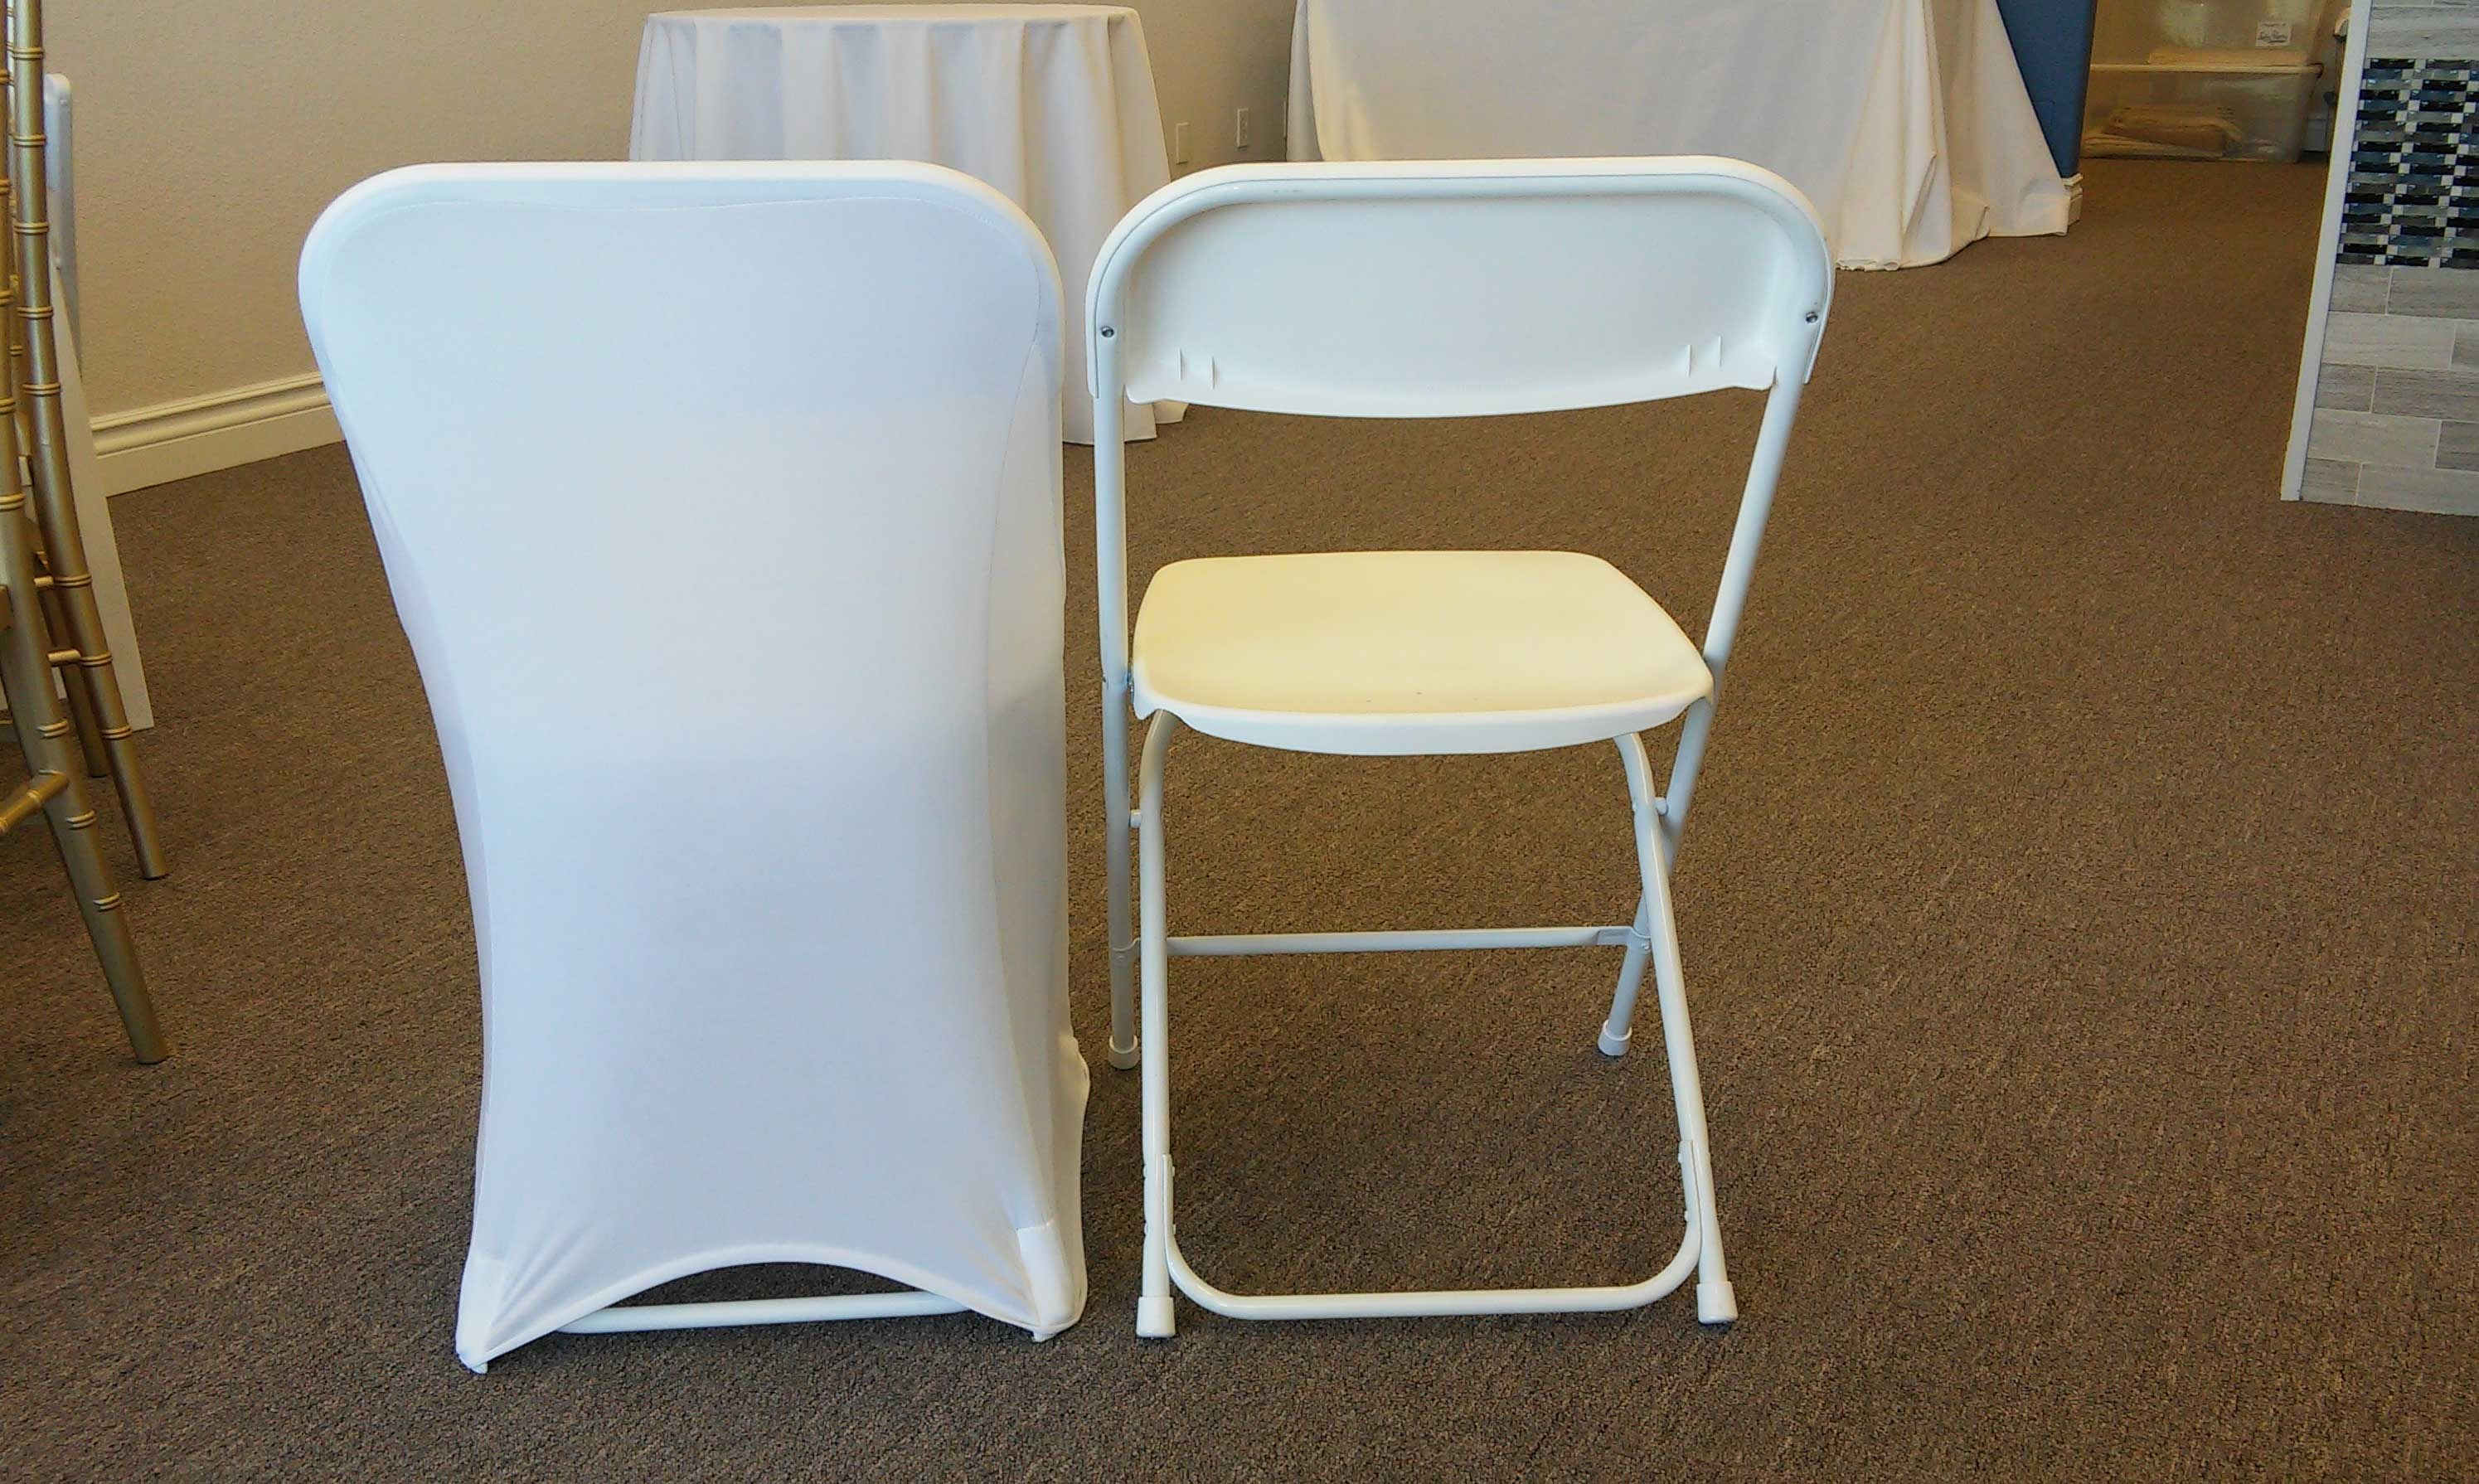 Best 25 Chair cover rentals ideas on Pinterest